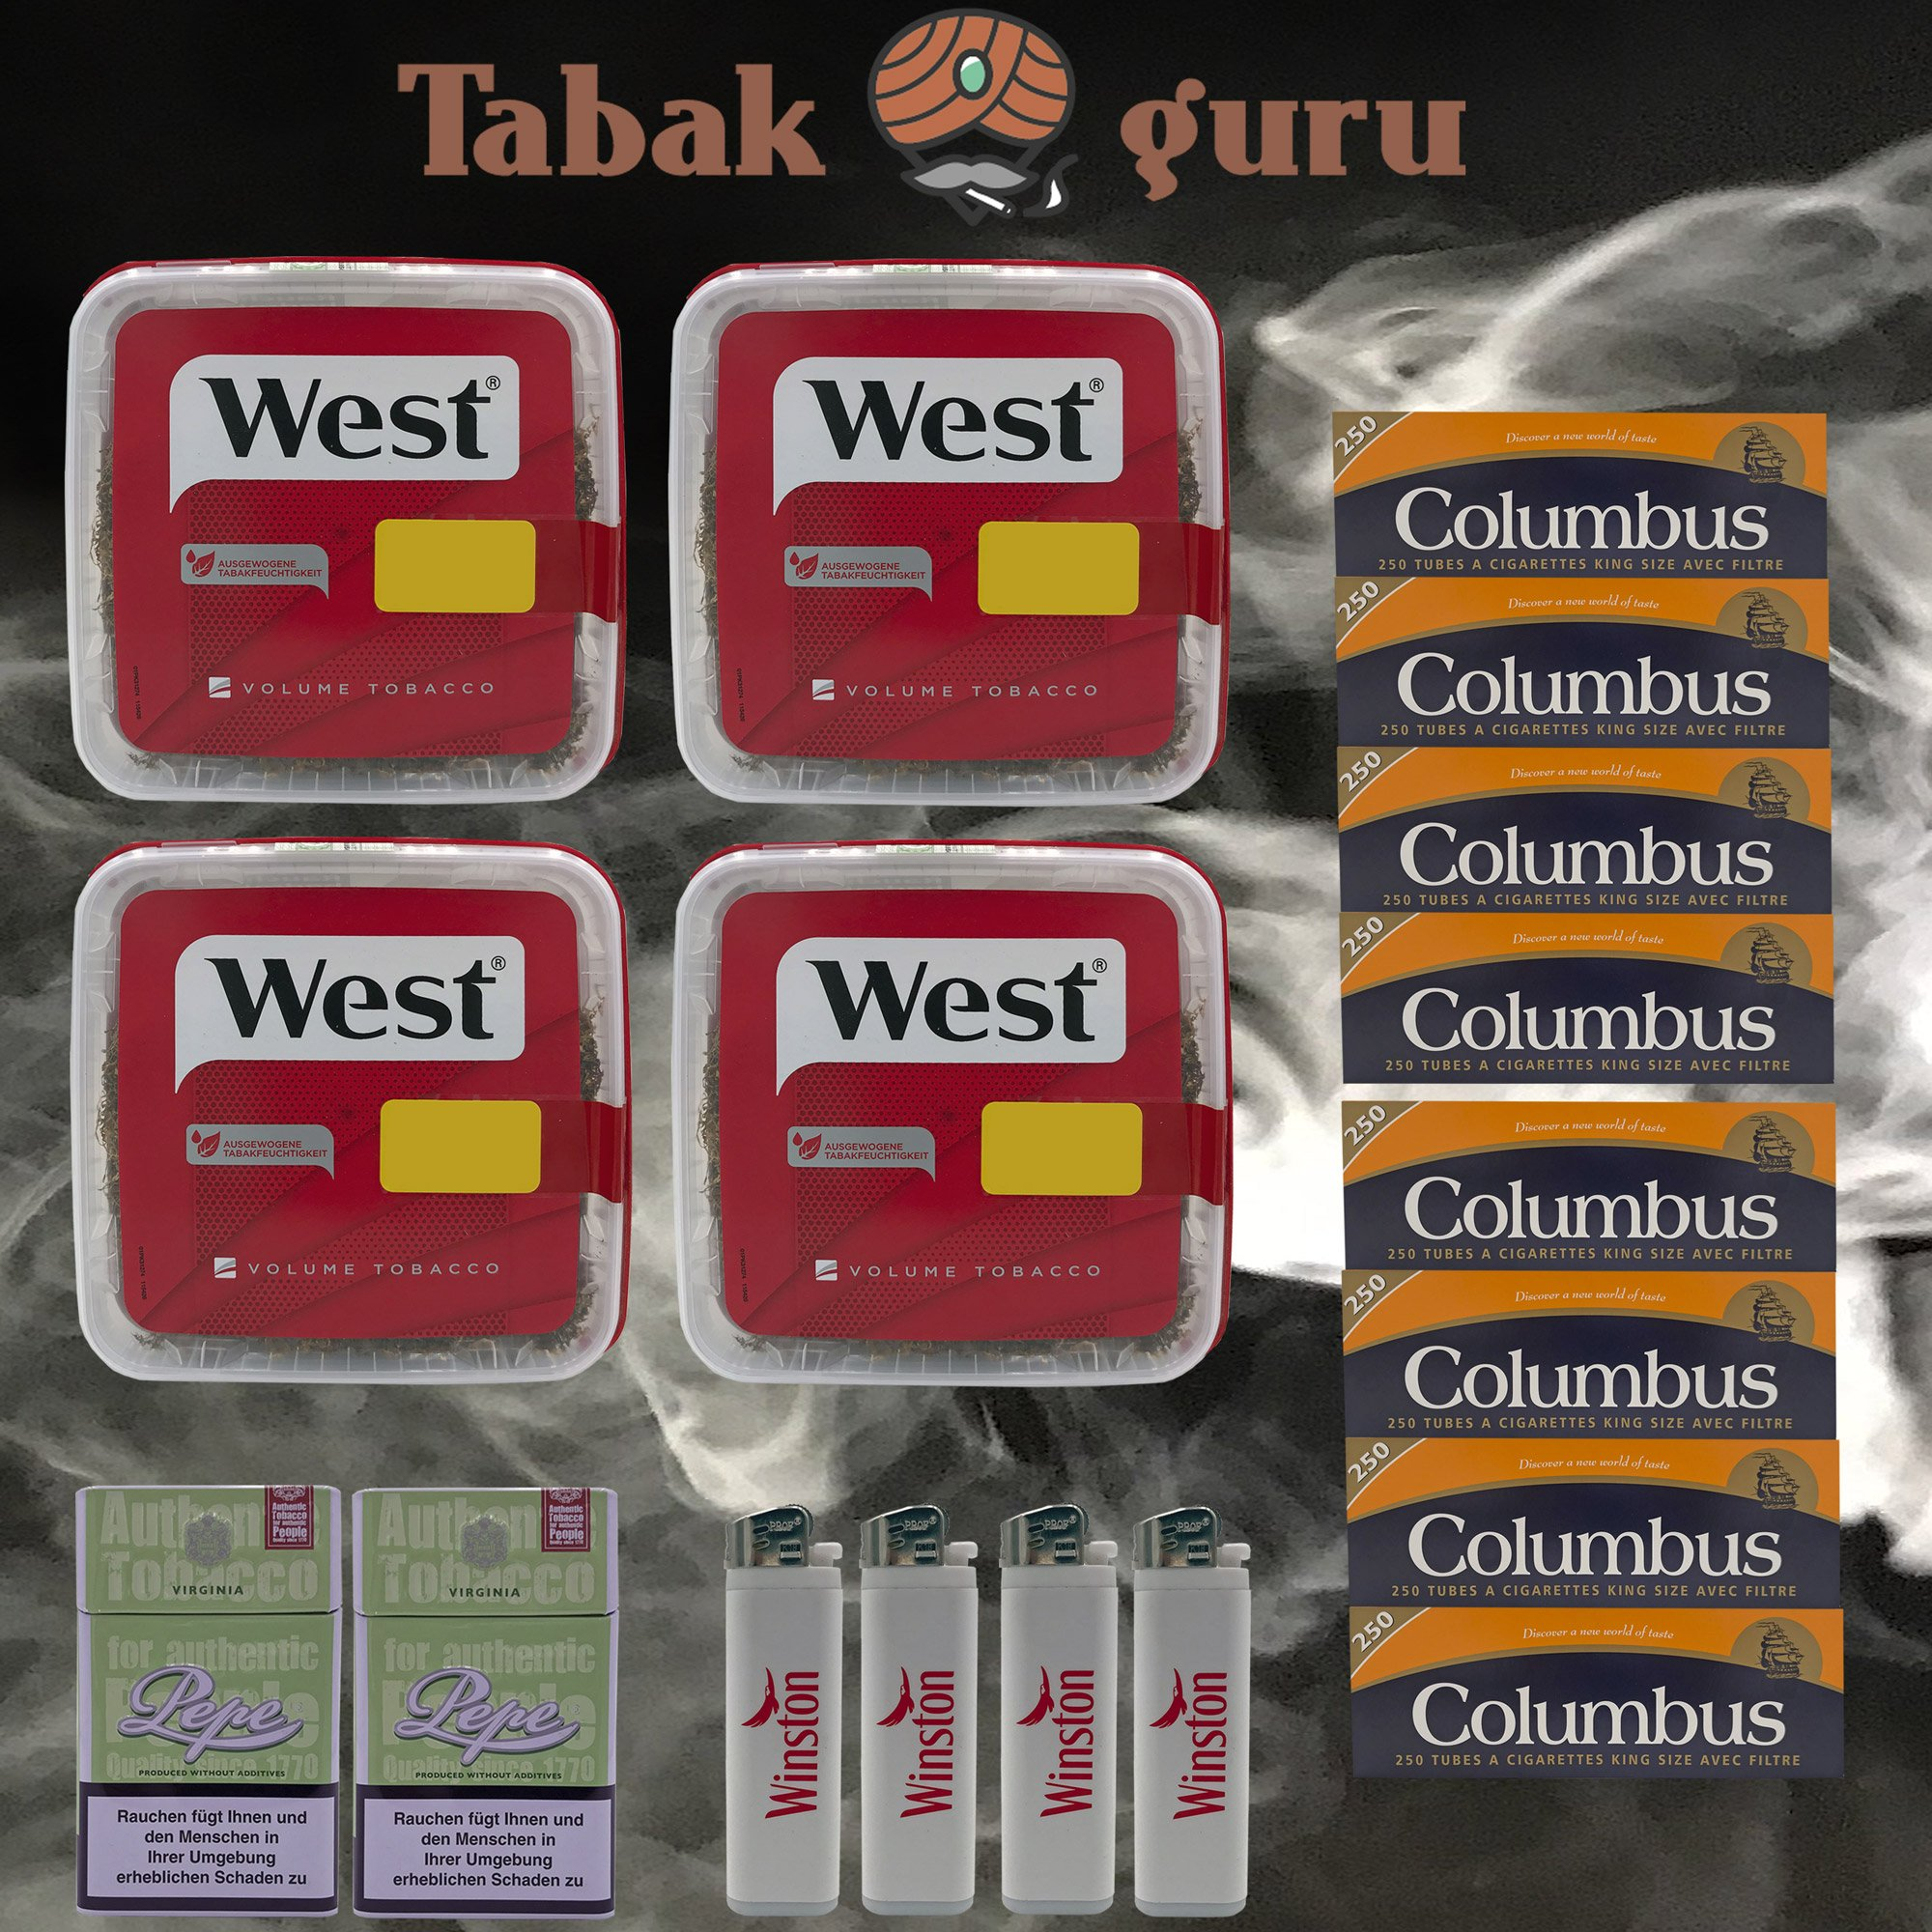 4x West Red Volumentabak Box 170g + 2000 Columbus Hülsen + Zubehör